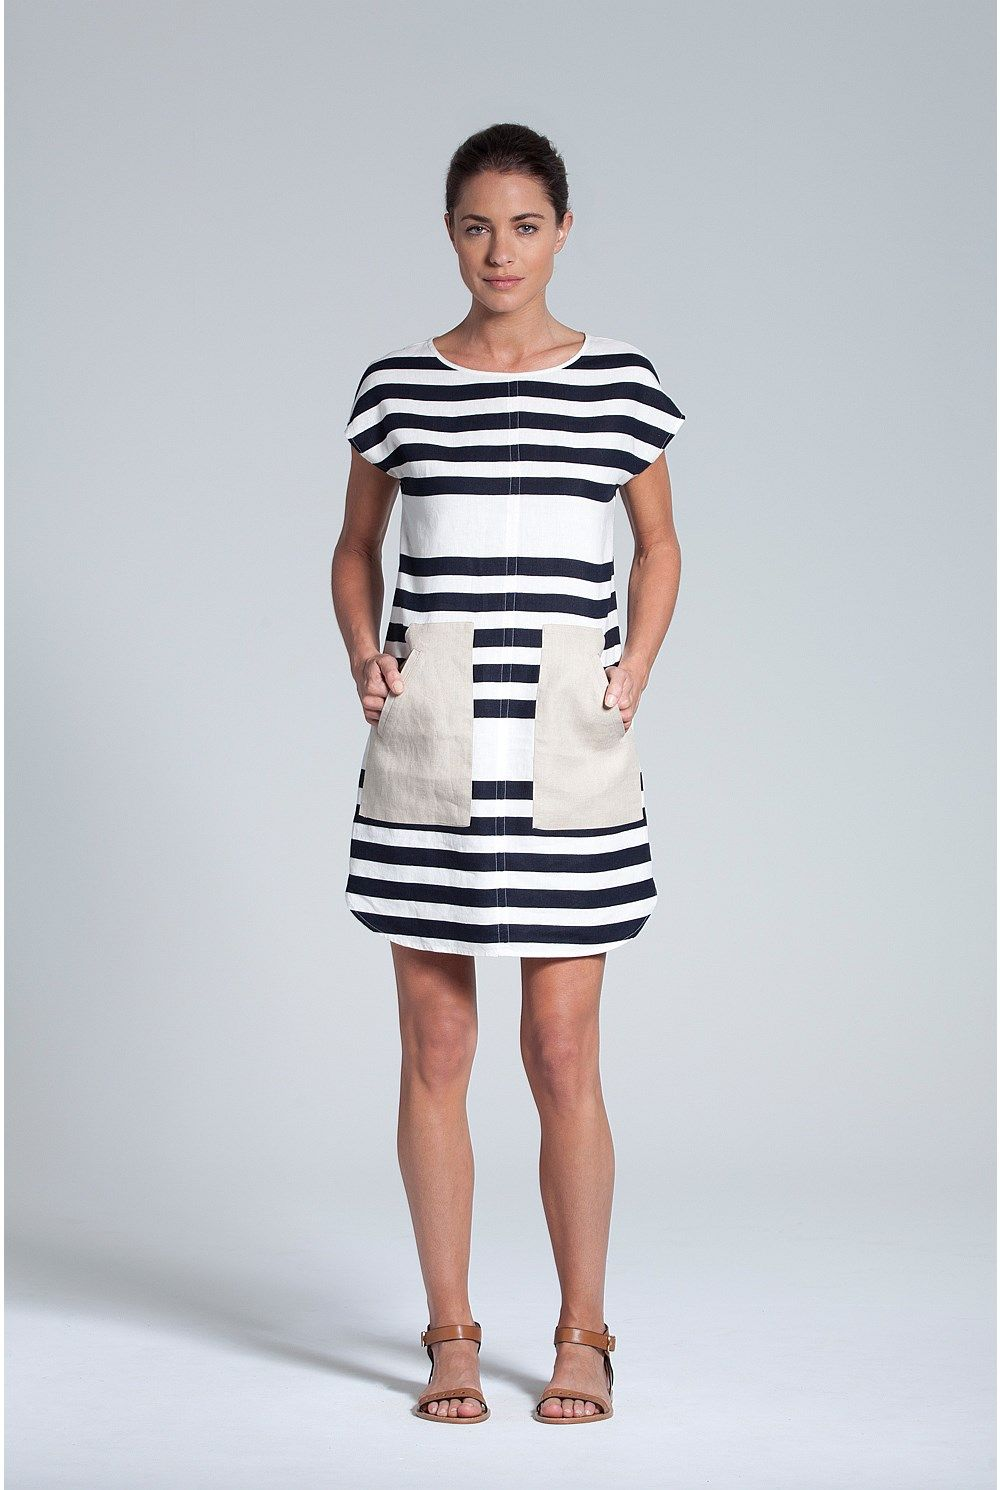 Trenery - Women's Dresses Online - Placed Stripe Dress | Fashion ...